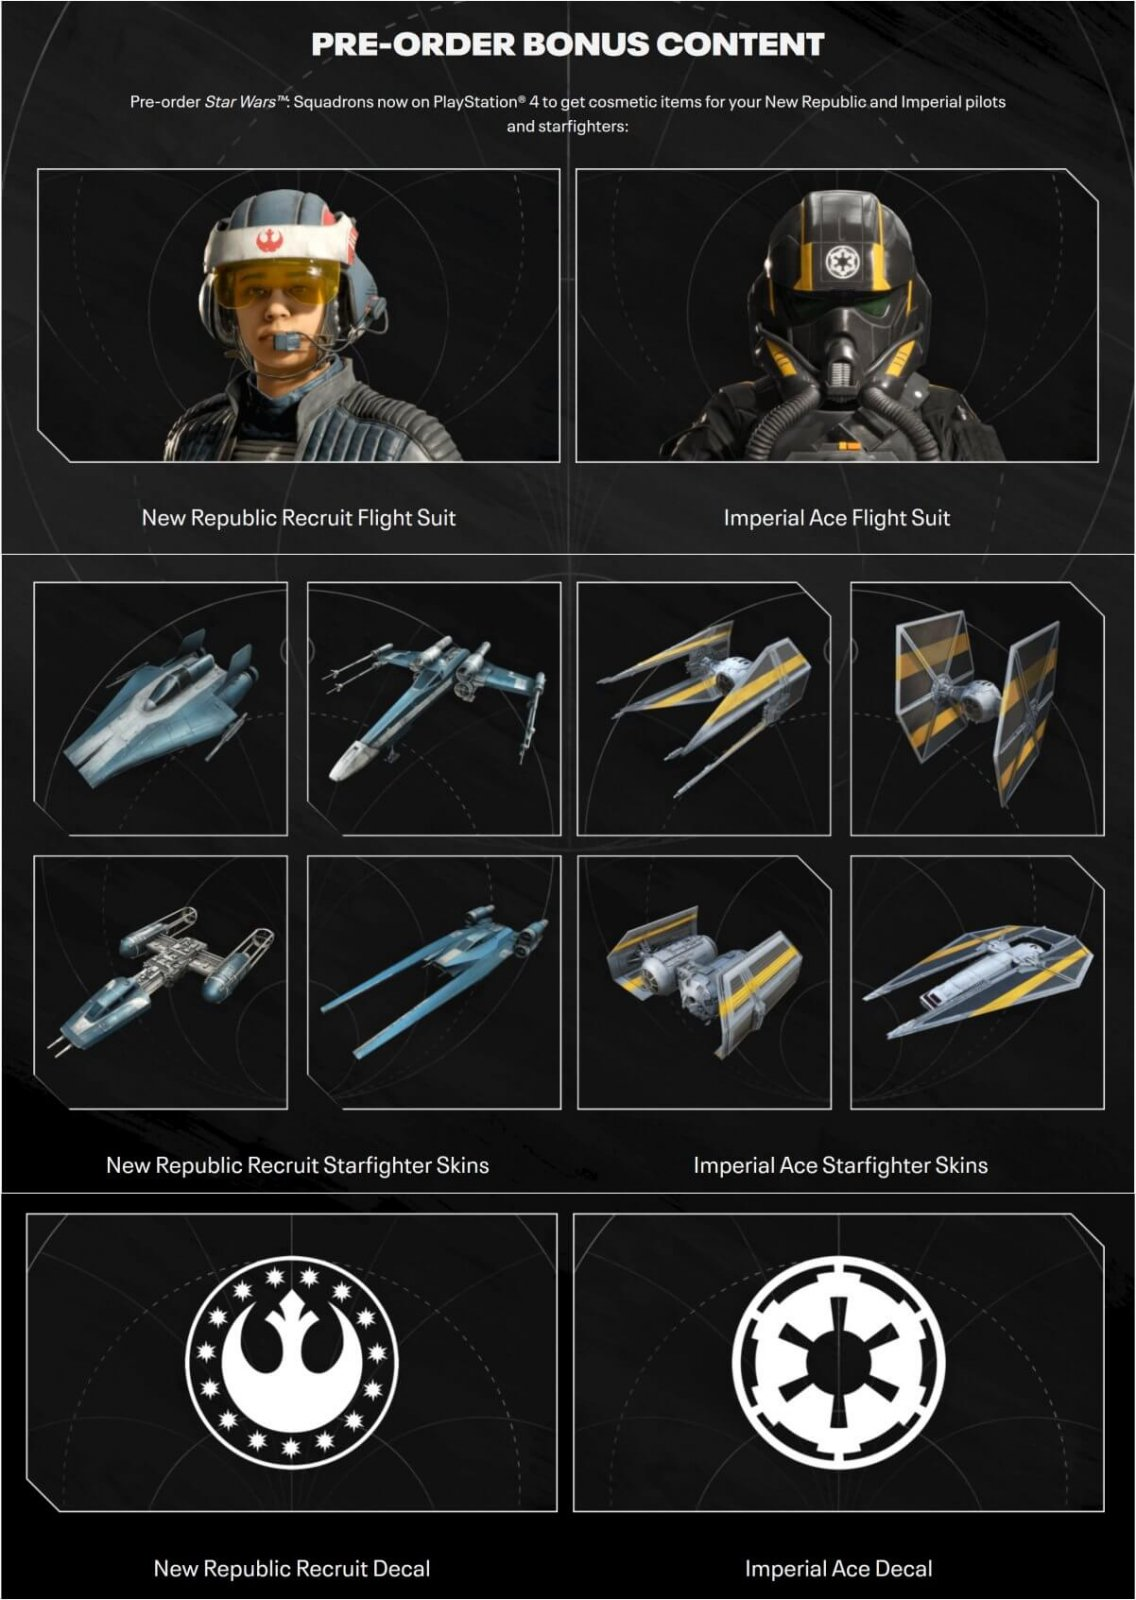 Star Wars Squadrons pre-order